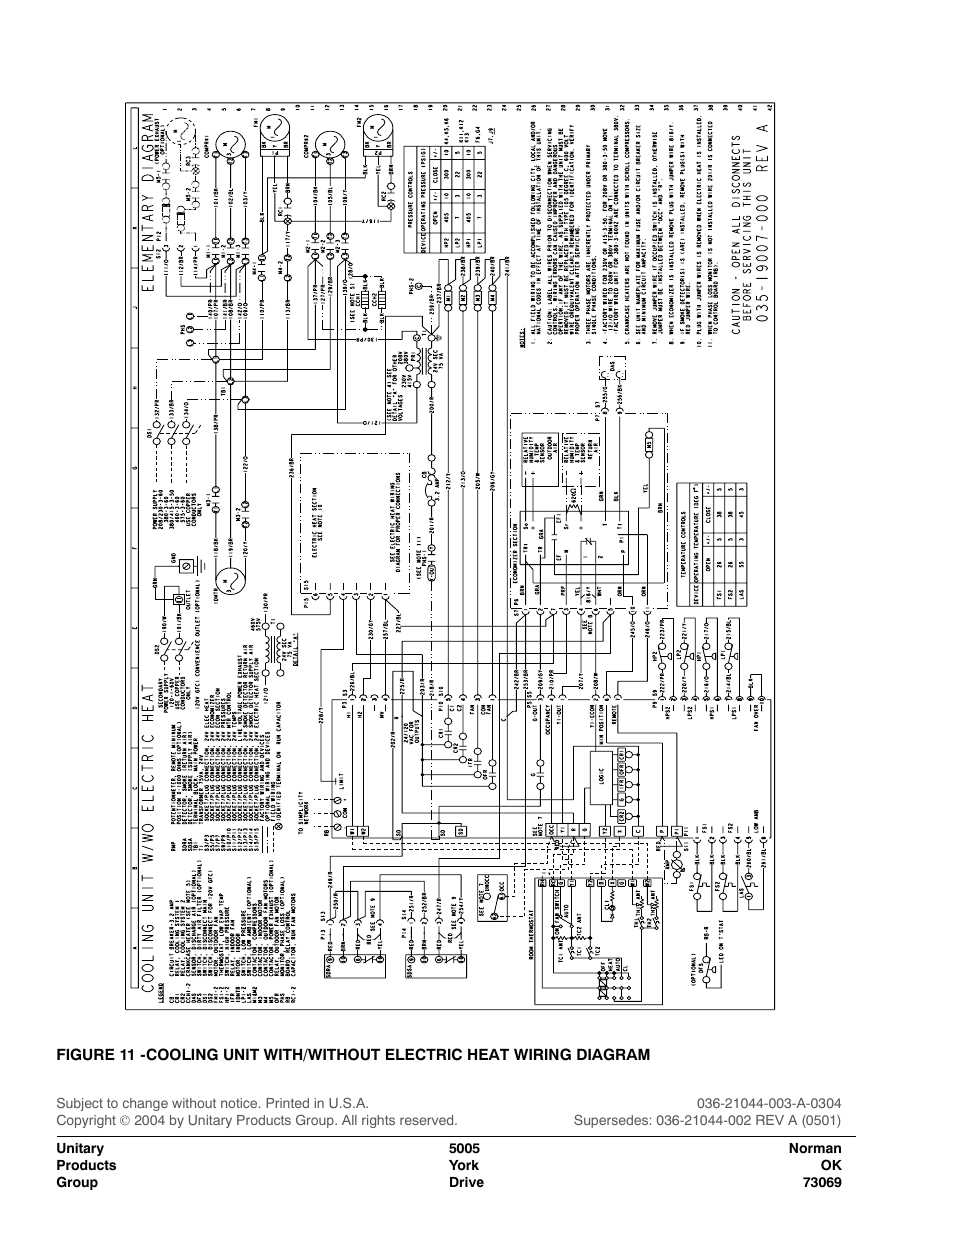 T14027217 Wire paradon 8145 20 heatcraft likewise Wiring Diagram Of Lg Split Ac furthermore Ladder Schematic Refrigeration as well Tempstar Furnace Serial Number Wiring Diagrams in addition  on international comfort hvac air conditioner